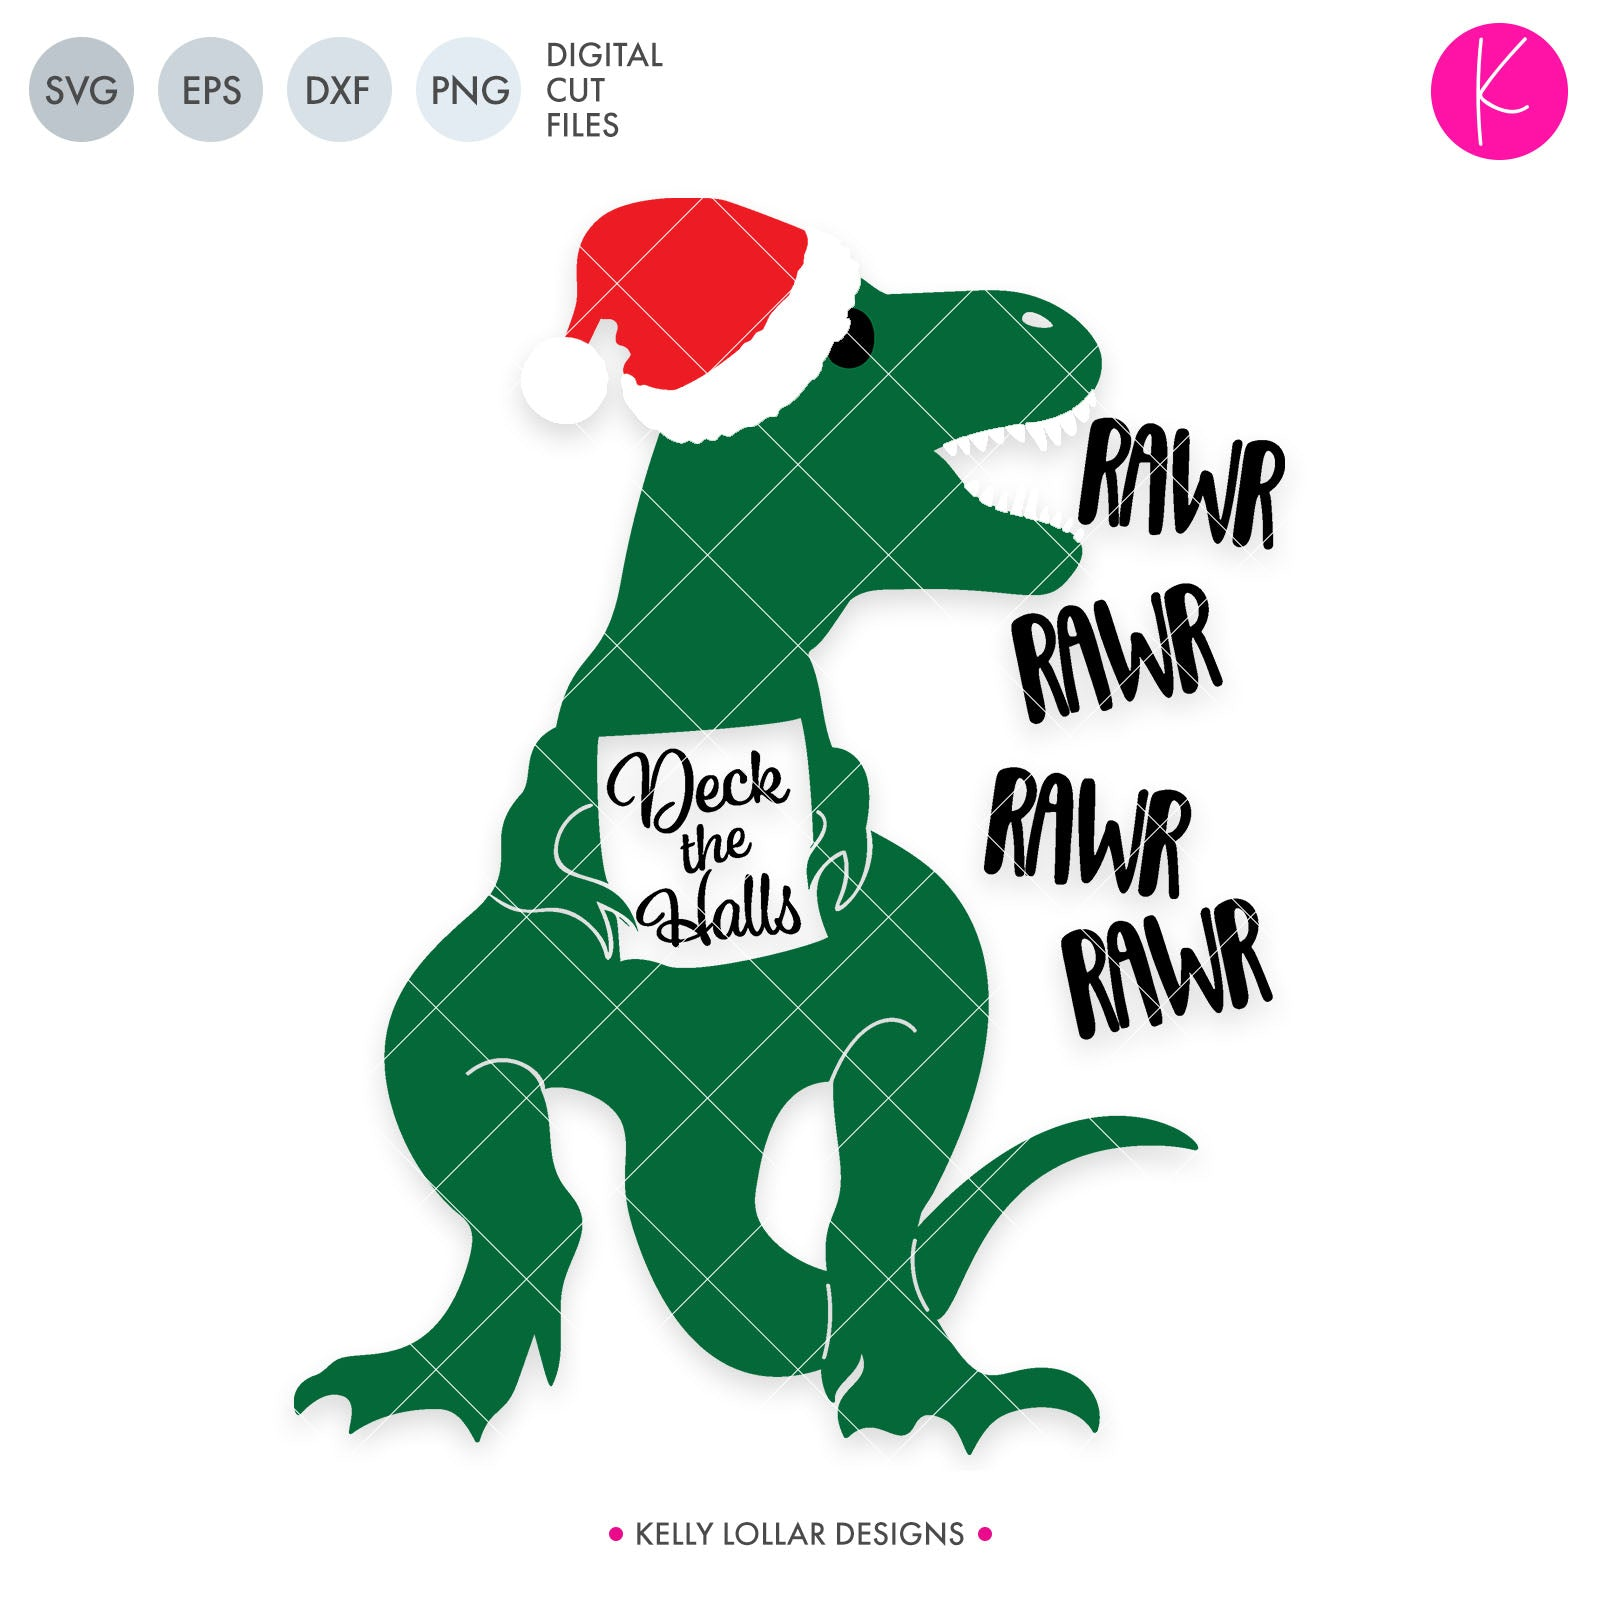 e9041d684059b Caroling T-Rex SVG Cut File Dinosaur with Santa Hat Singing Deck the Halls  for. Caroling T-Rex SVG Cut File Dinosaur with Santa Hat Singing Deck the  Halls ...